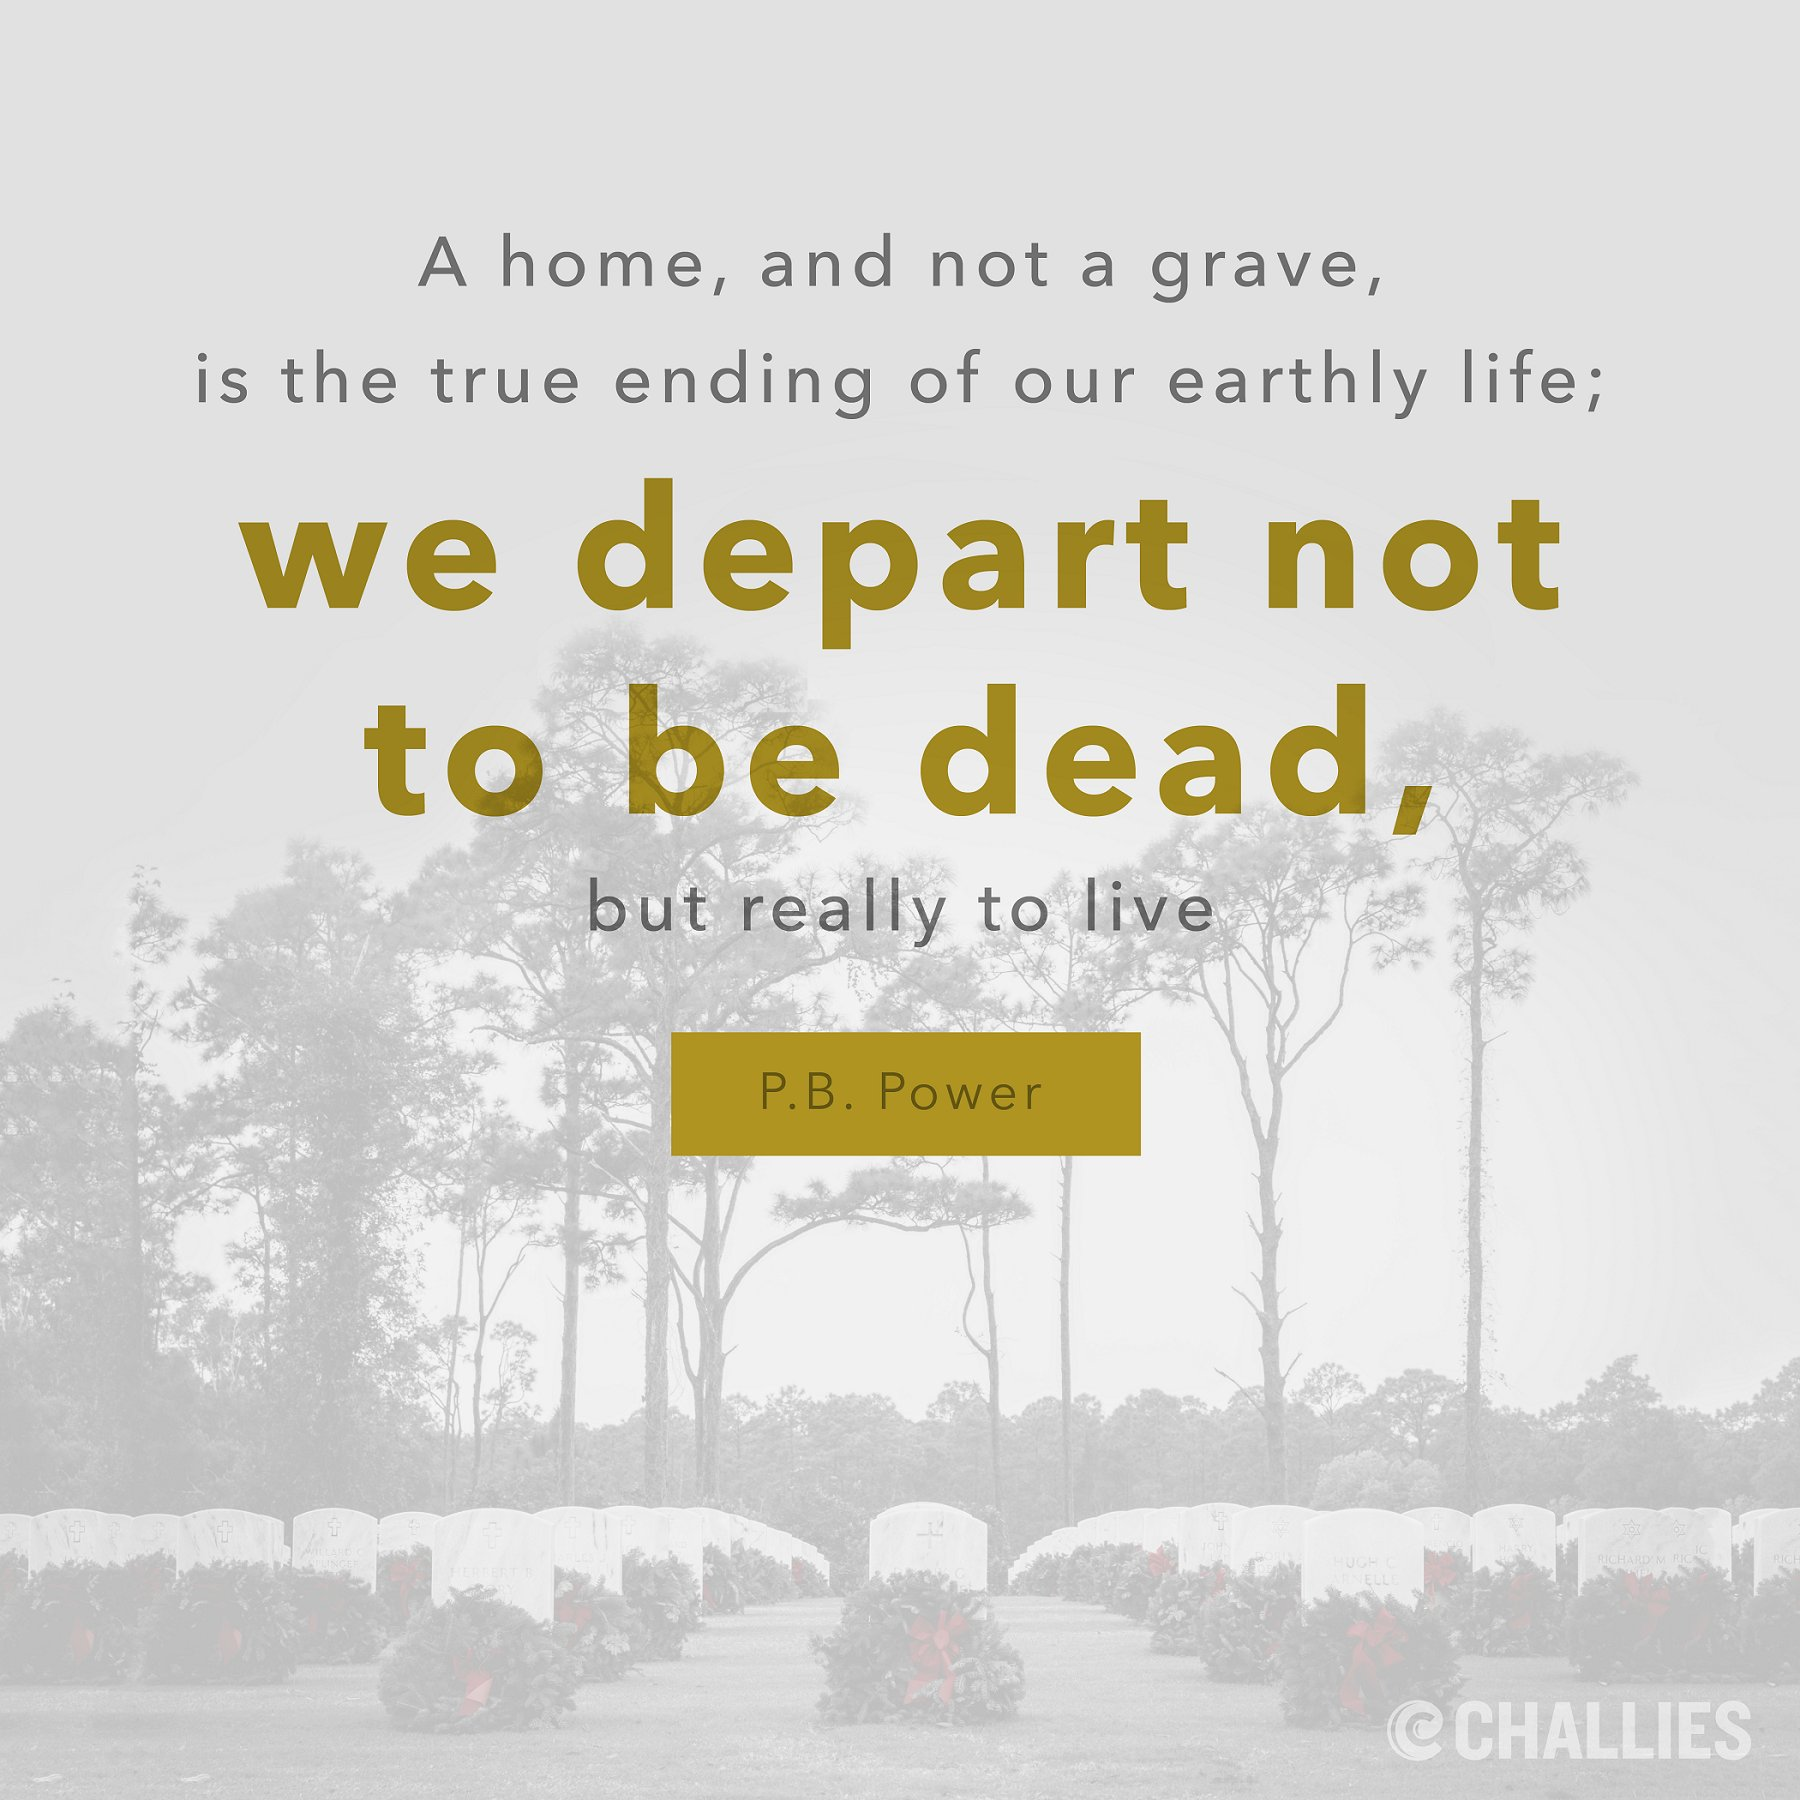 """""""A home, and not a grave, is the true ending of our earthly life; we depart not to be dead, but really to live."""" (P.B. Power) https://t.co/lZBPcTbQyI"""